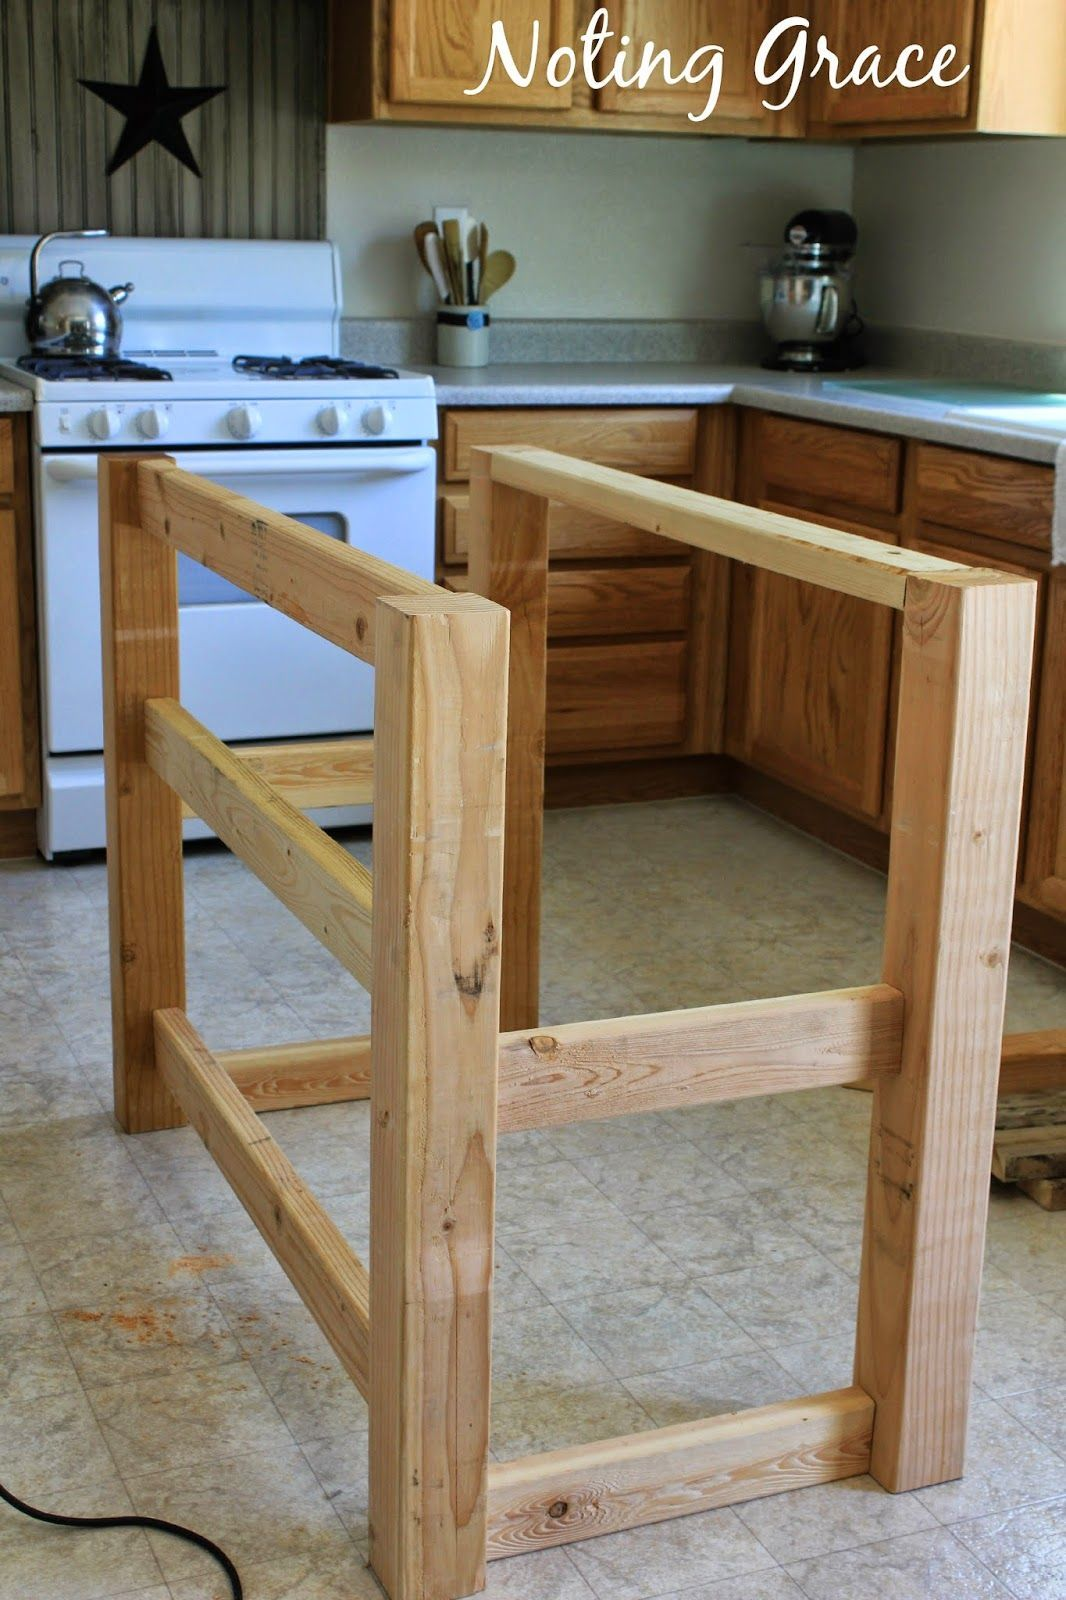 noting grace: diy pallet kitchen island for less than $50! | items